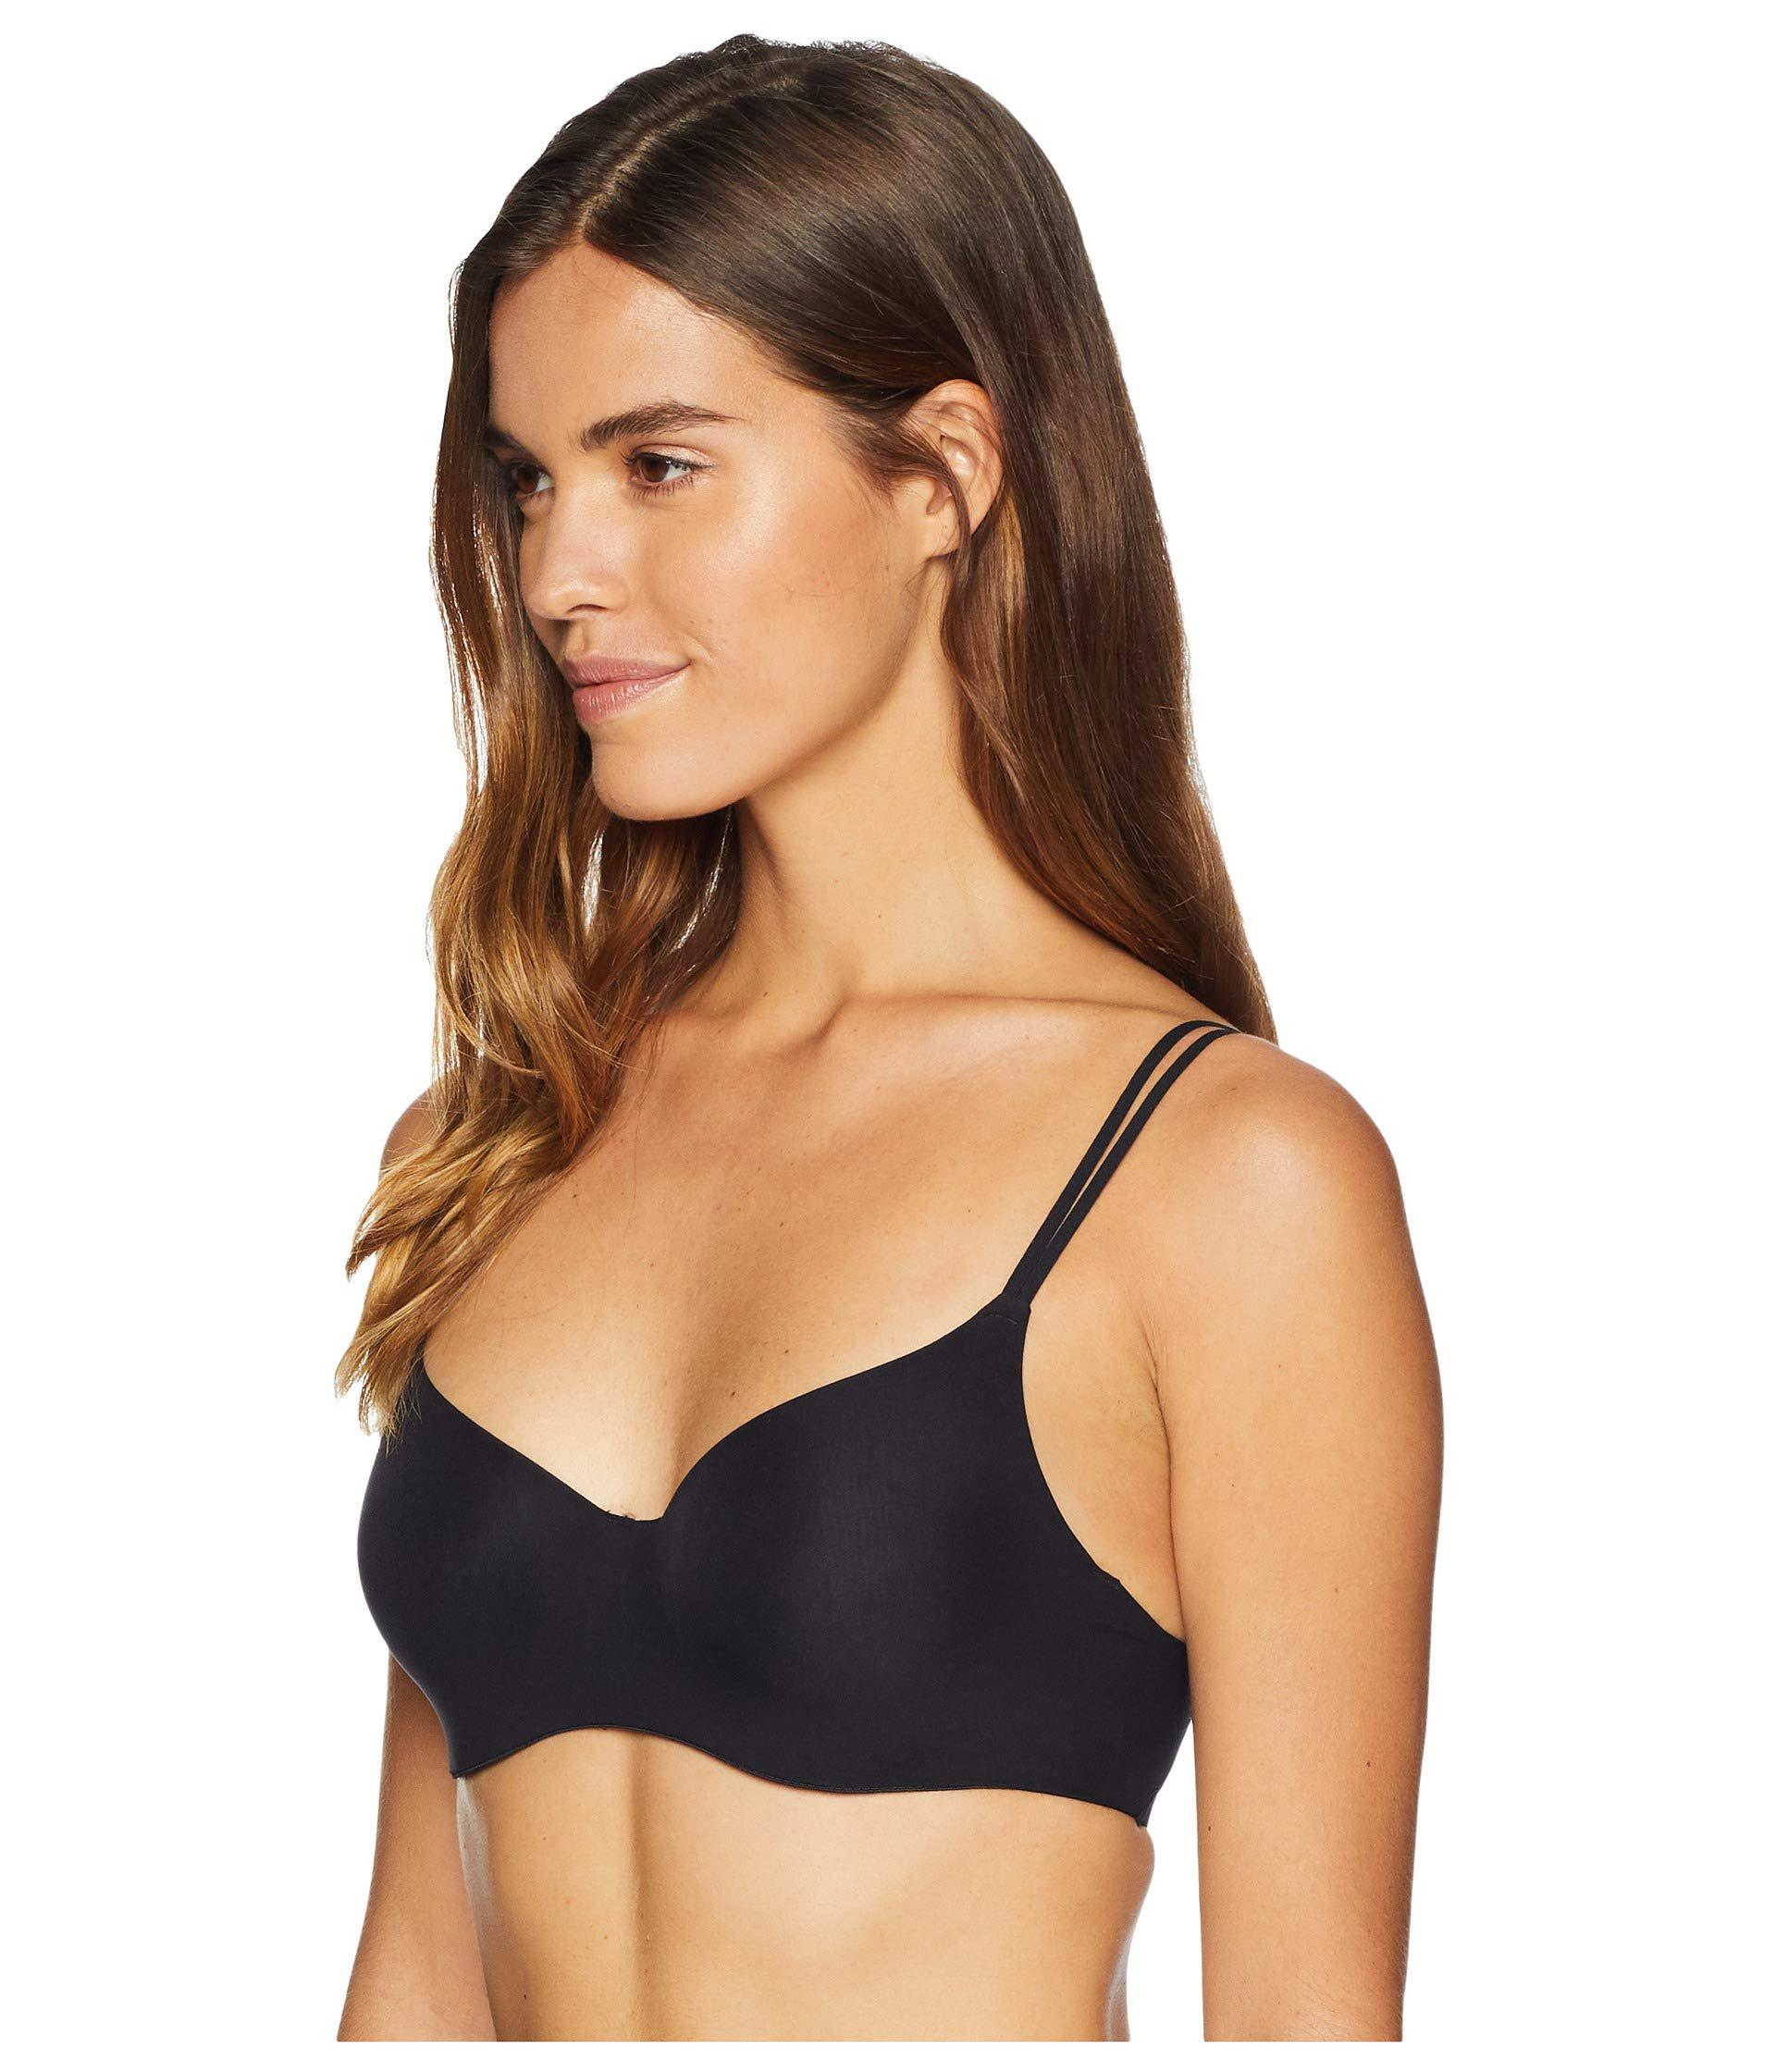 6211e5027ddf54 Lyst - Free People Zoey Underwire Bra in Black - Save 35%